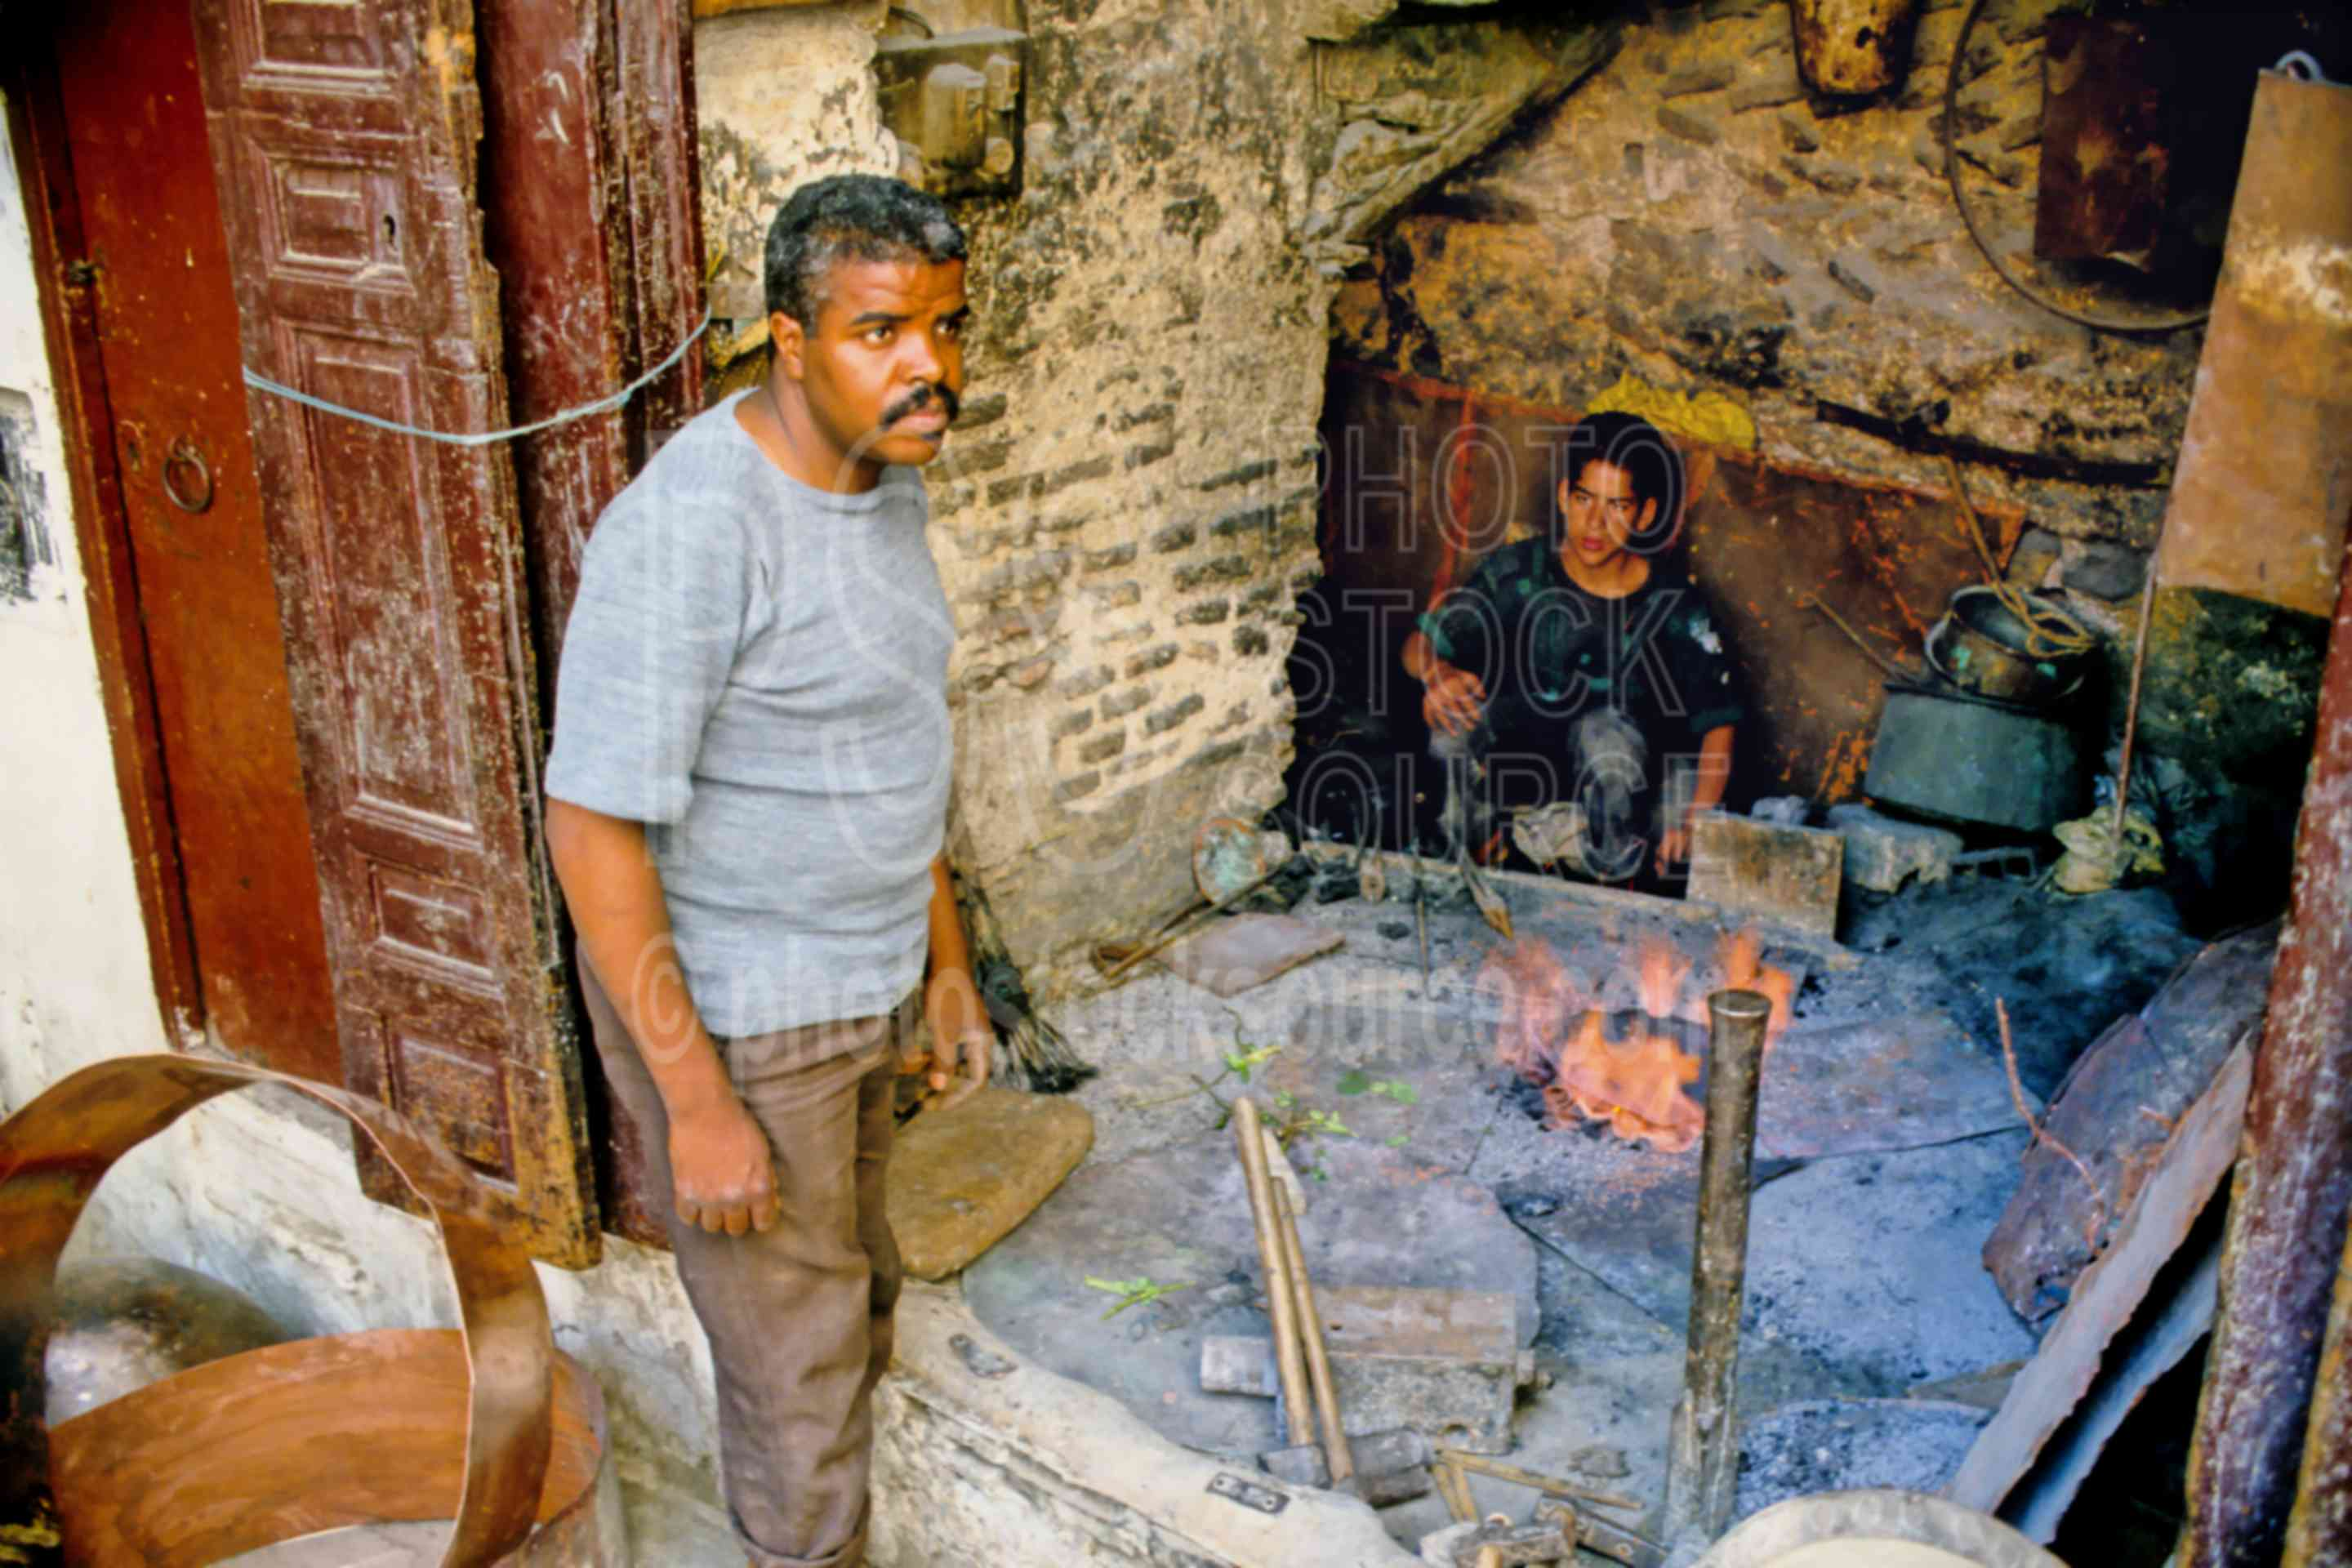 Blacksmith and Son,alley,father,fezs,market,metal,sons,street,work,worker,fezs,morocco markets